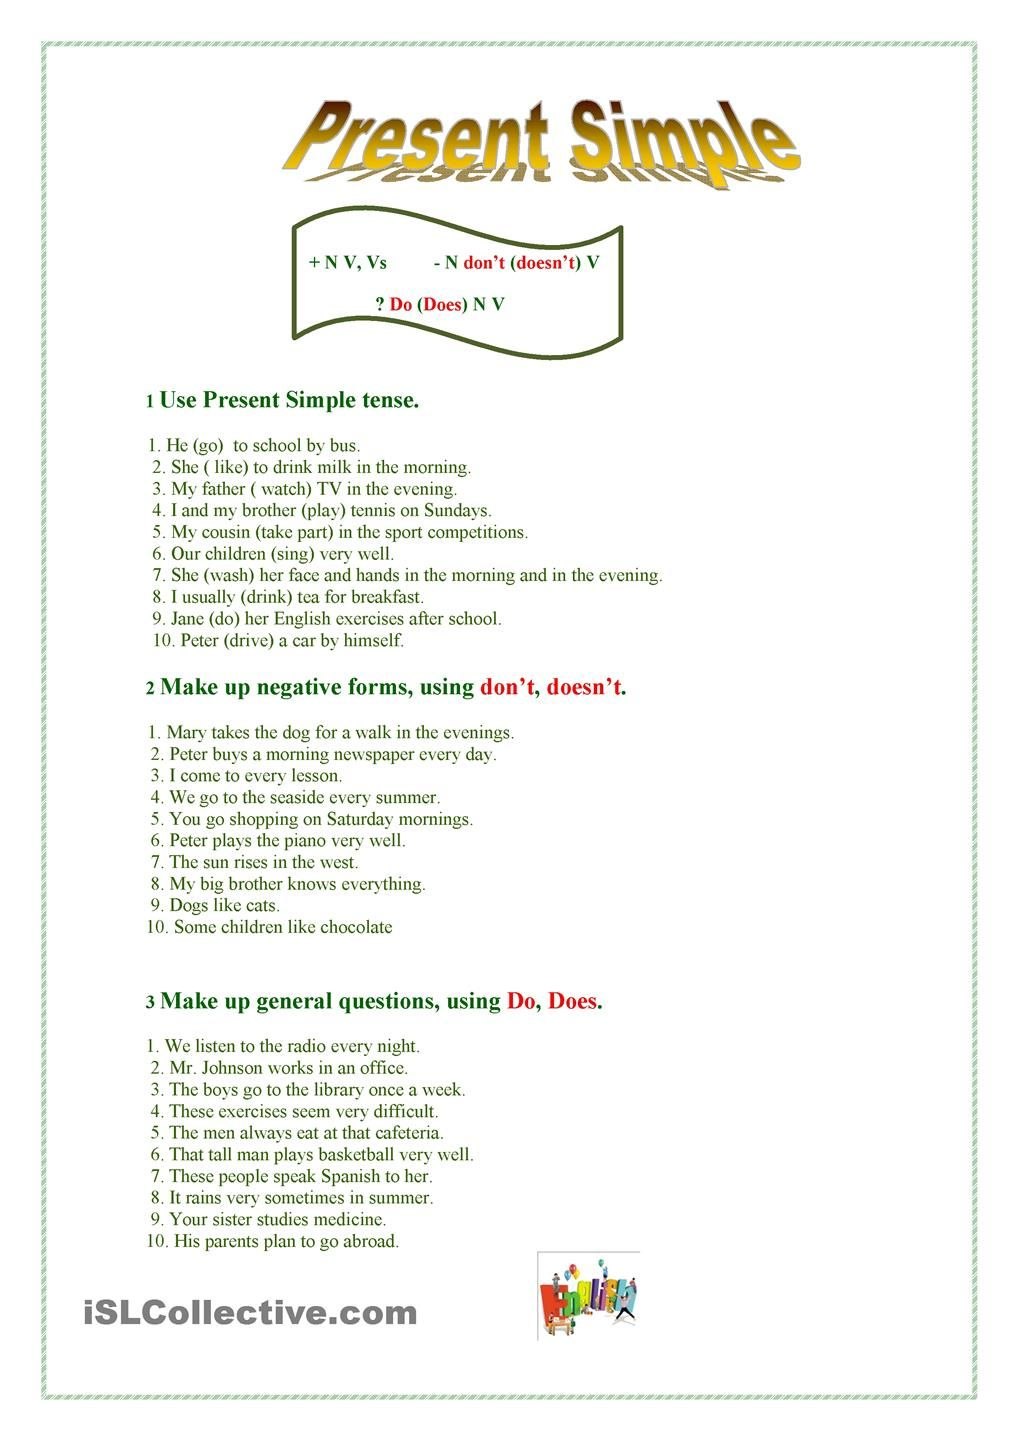 worksheet Well Vs Good Worksheet present simple pinterest english class and this worksheet is for introducing consolidating tense af